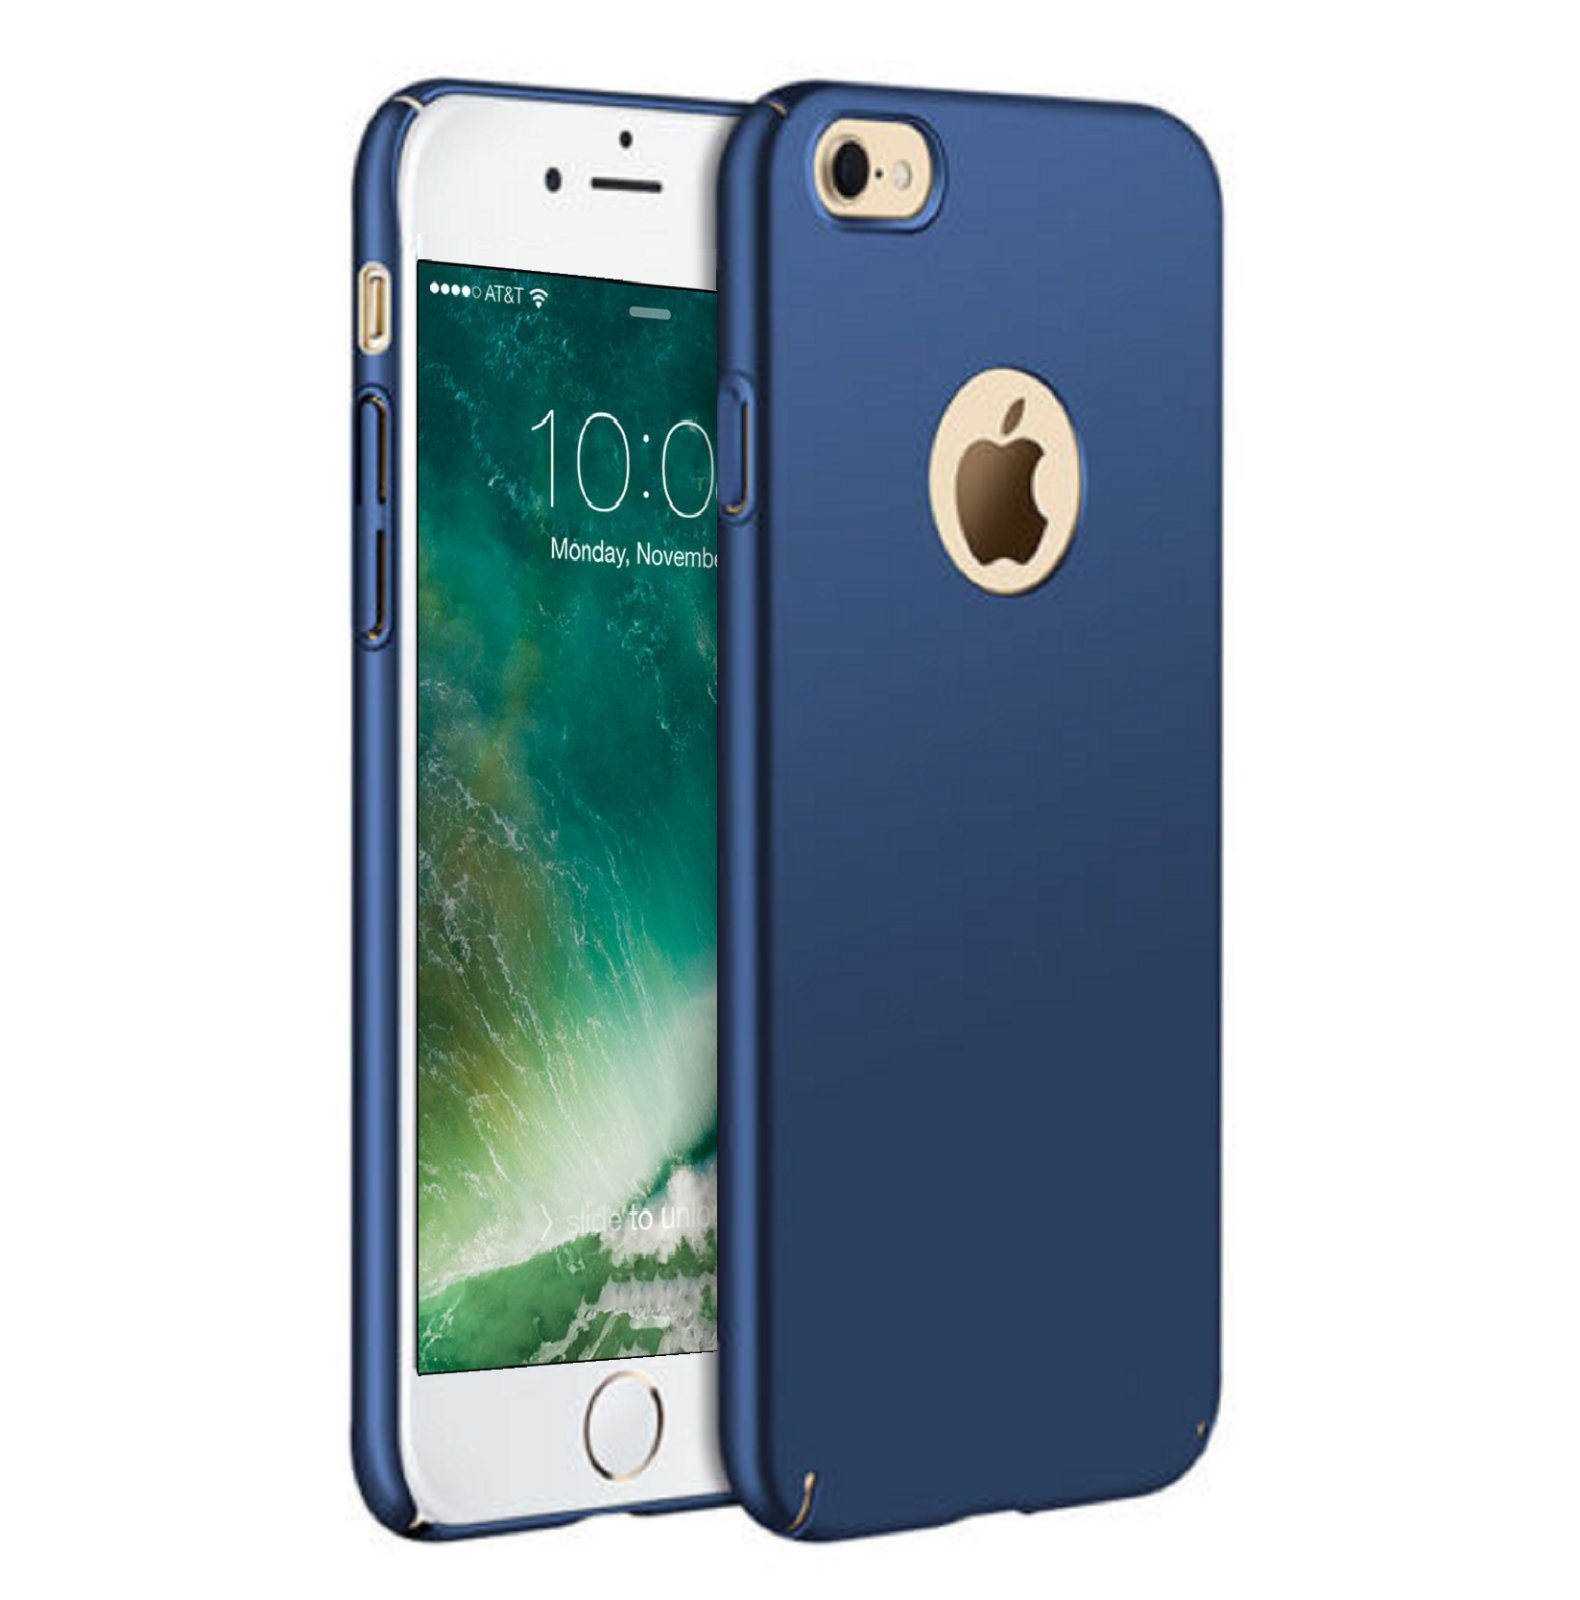 For-iPhone-6-6s-7-8-Plus-X-XR-XS-Max-Case-Shockproof-Ultra-Thin-Slim-Hard-Cover thumbnail 16